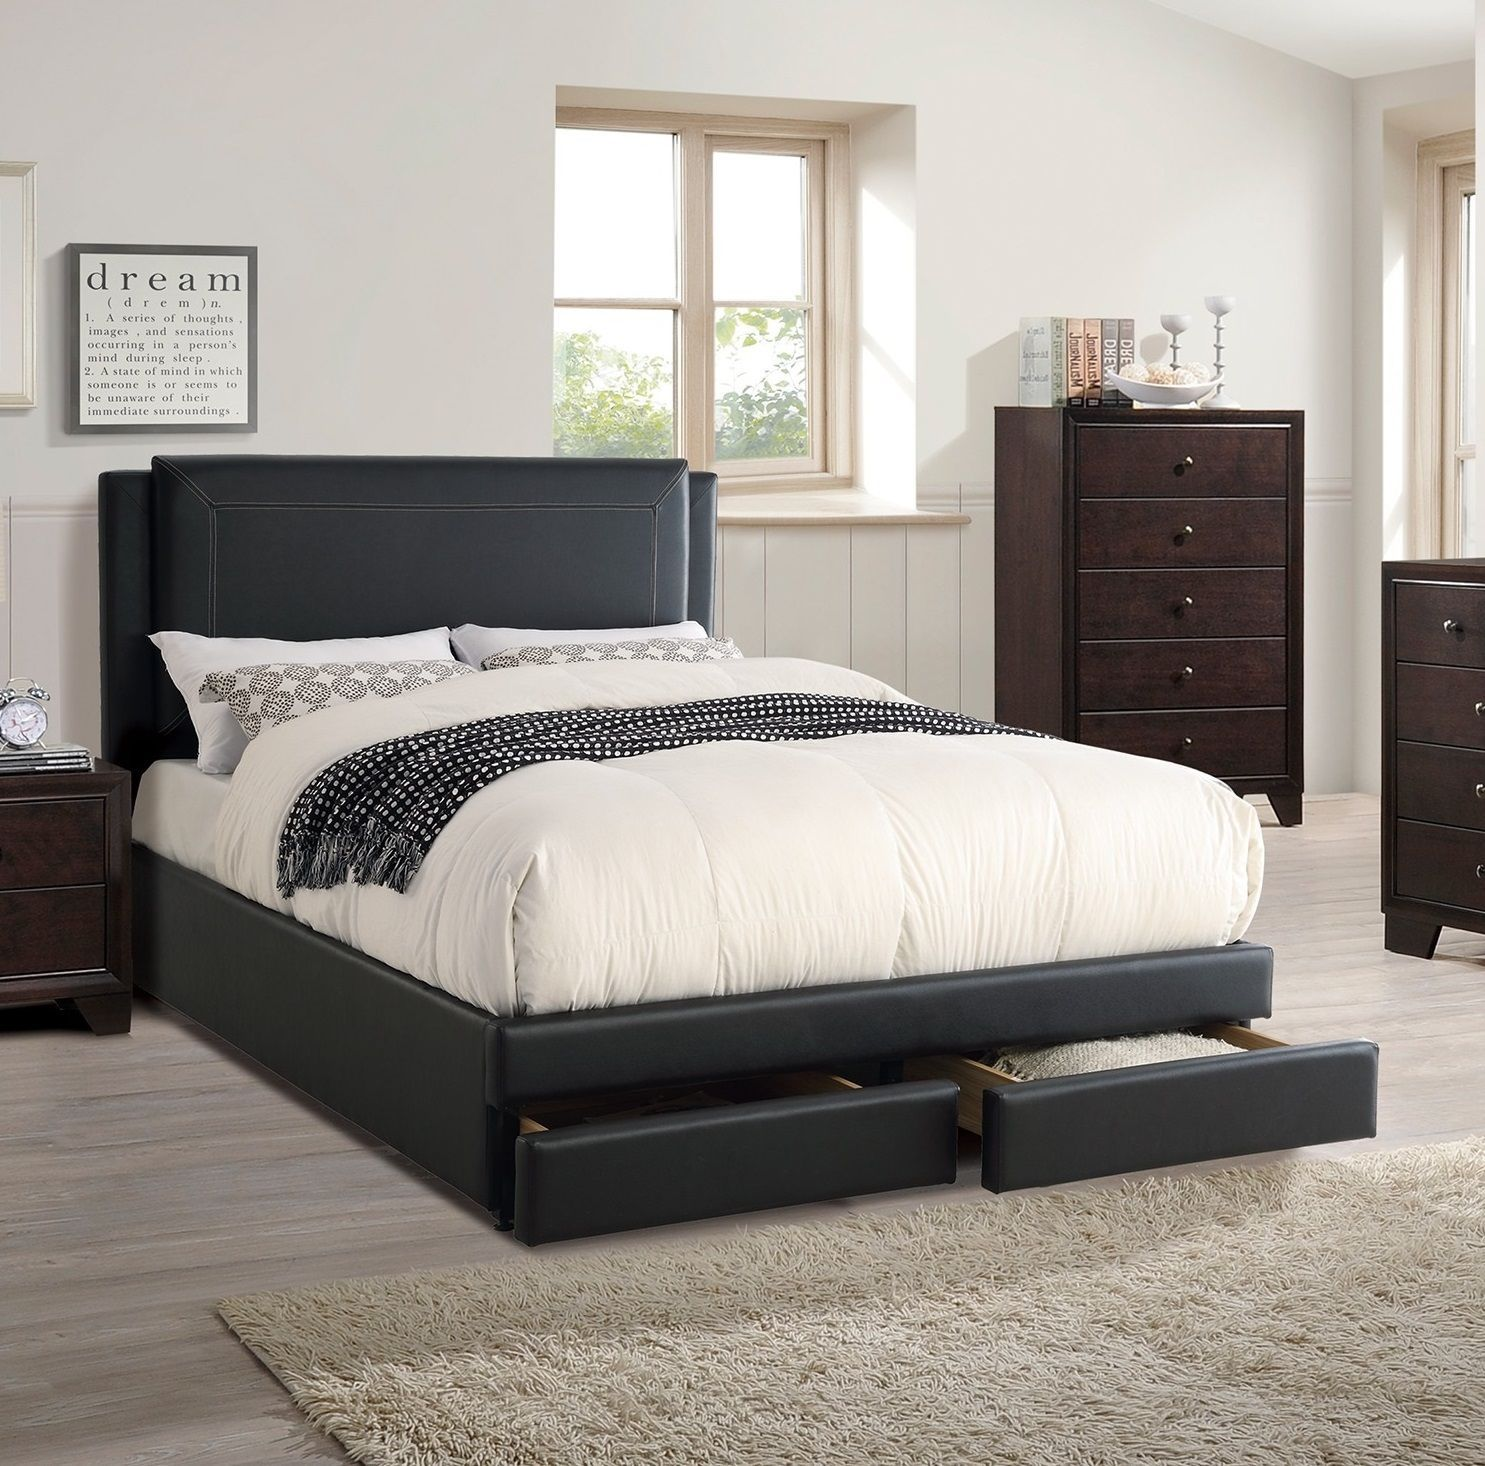 Cal king storage bed bedroom set black faux leather - California king storage bedroom sets ...